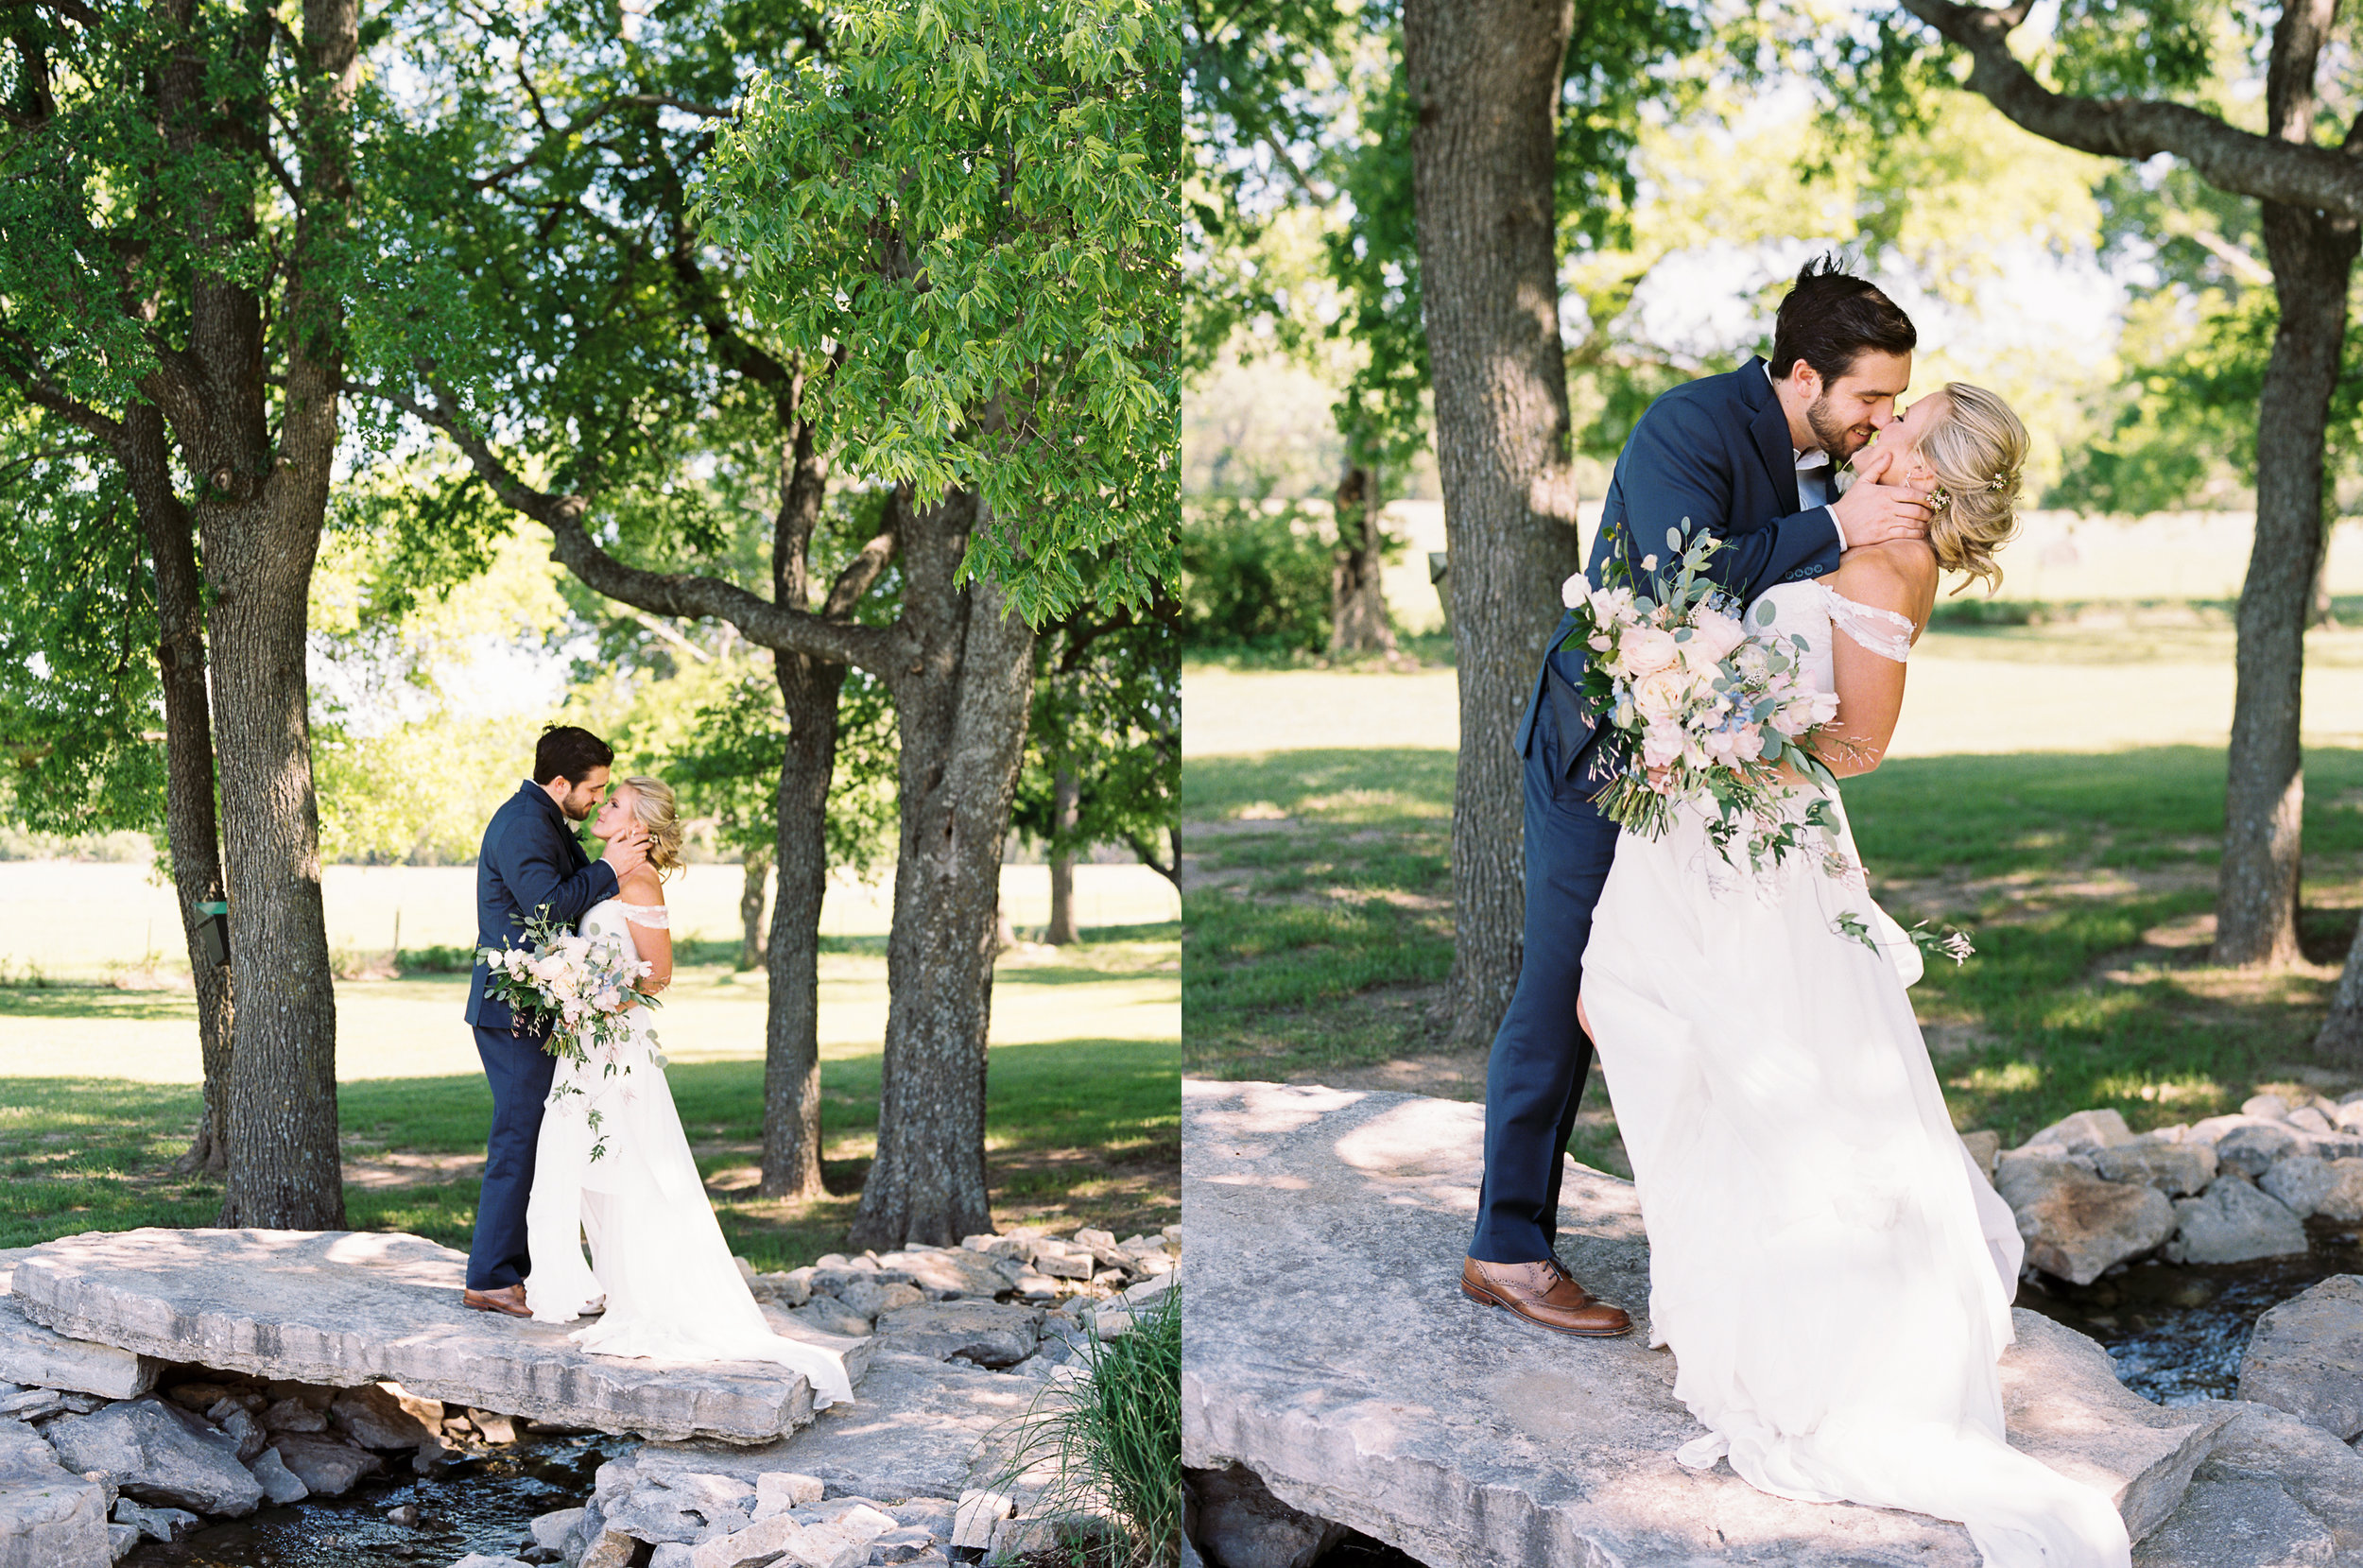 Laura & Kyle Preview-20.jpg